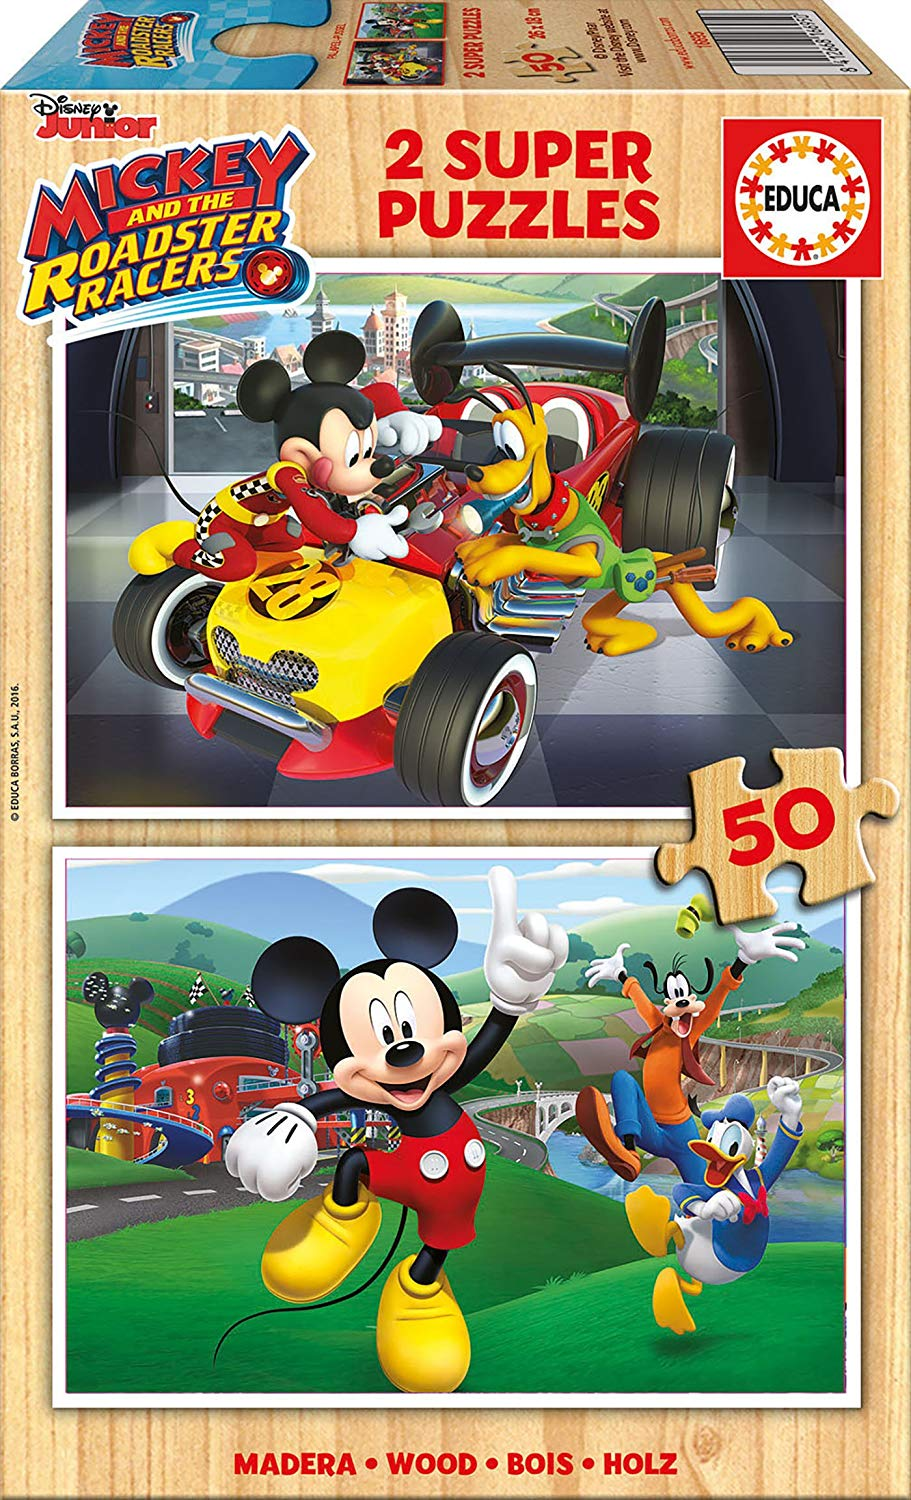 educa-2-holzpuzzles-mickey-and-the-roadster-racers-50-teile-puzzle-educa-17236